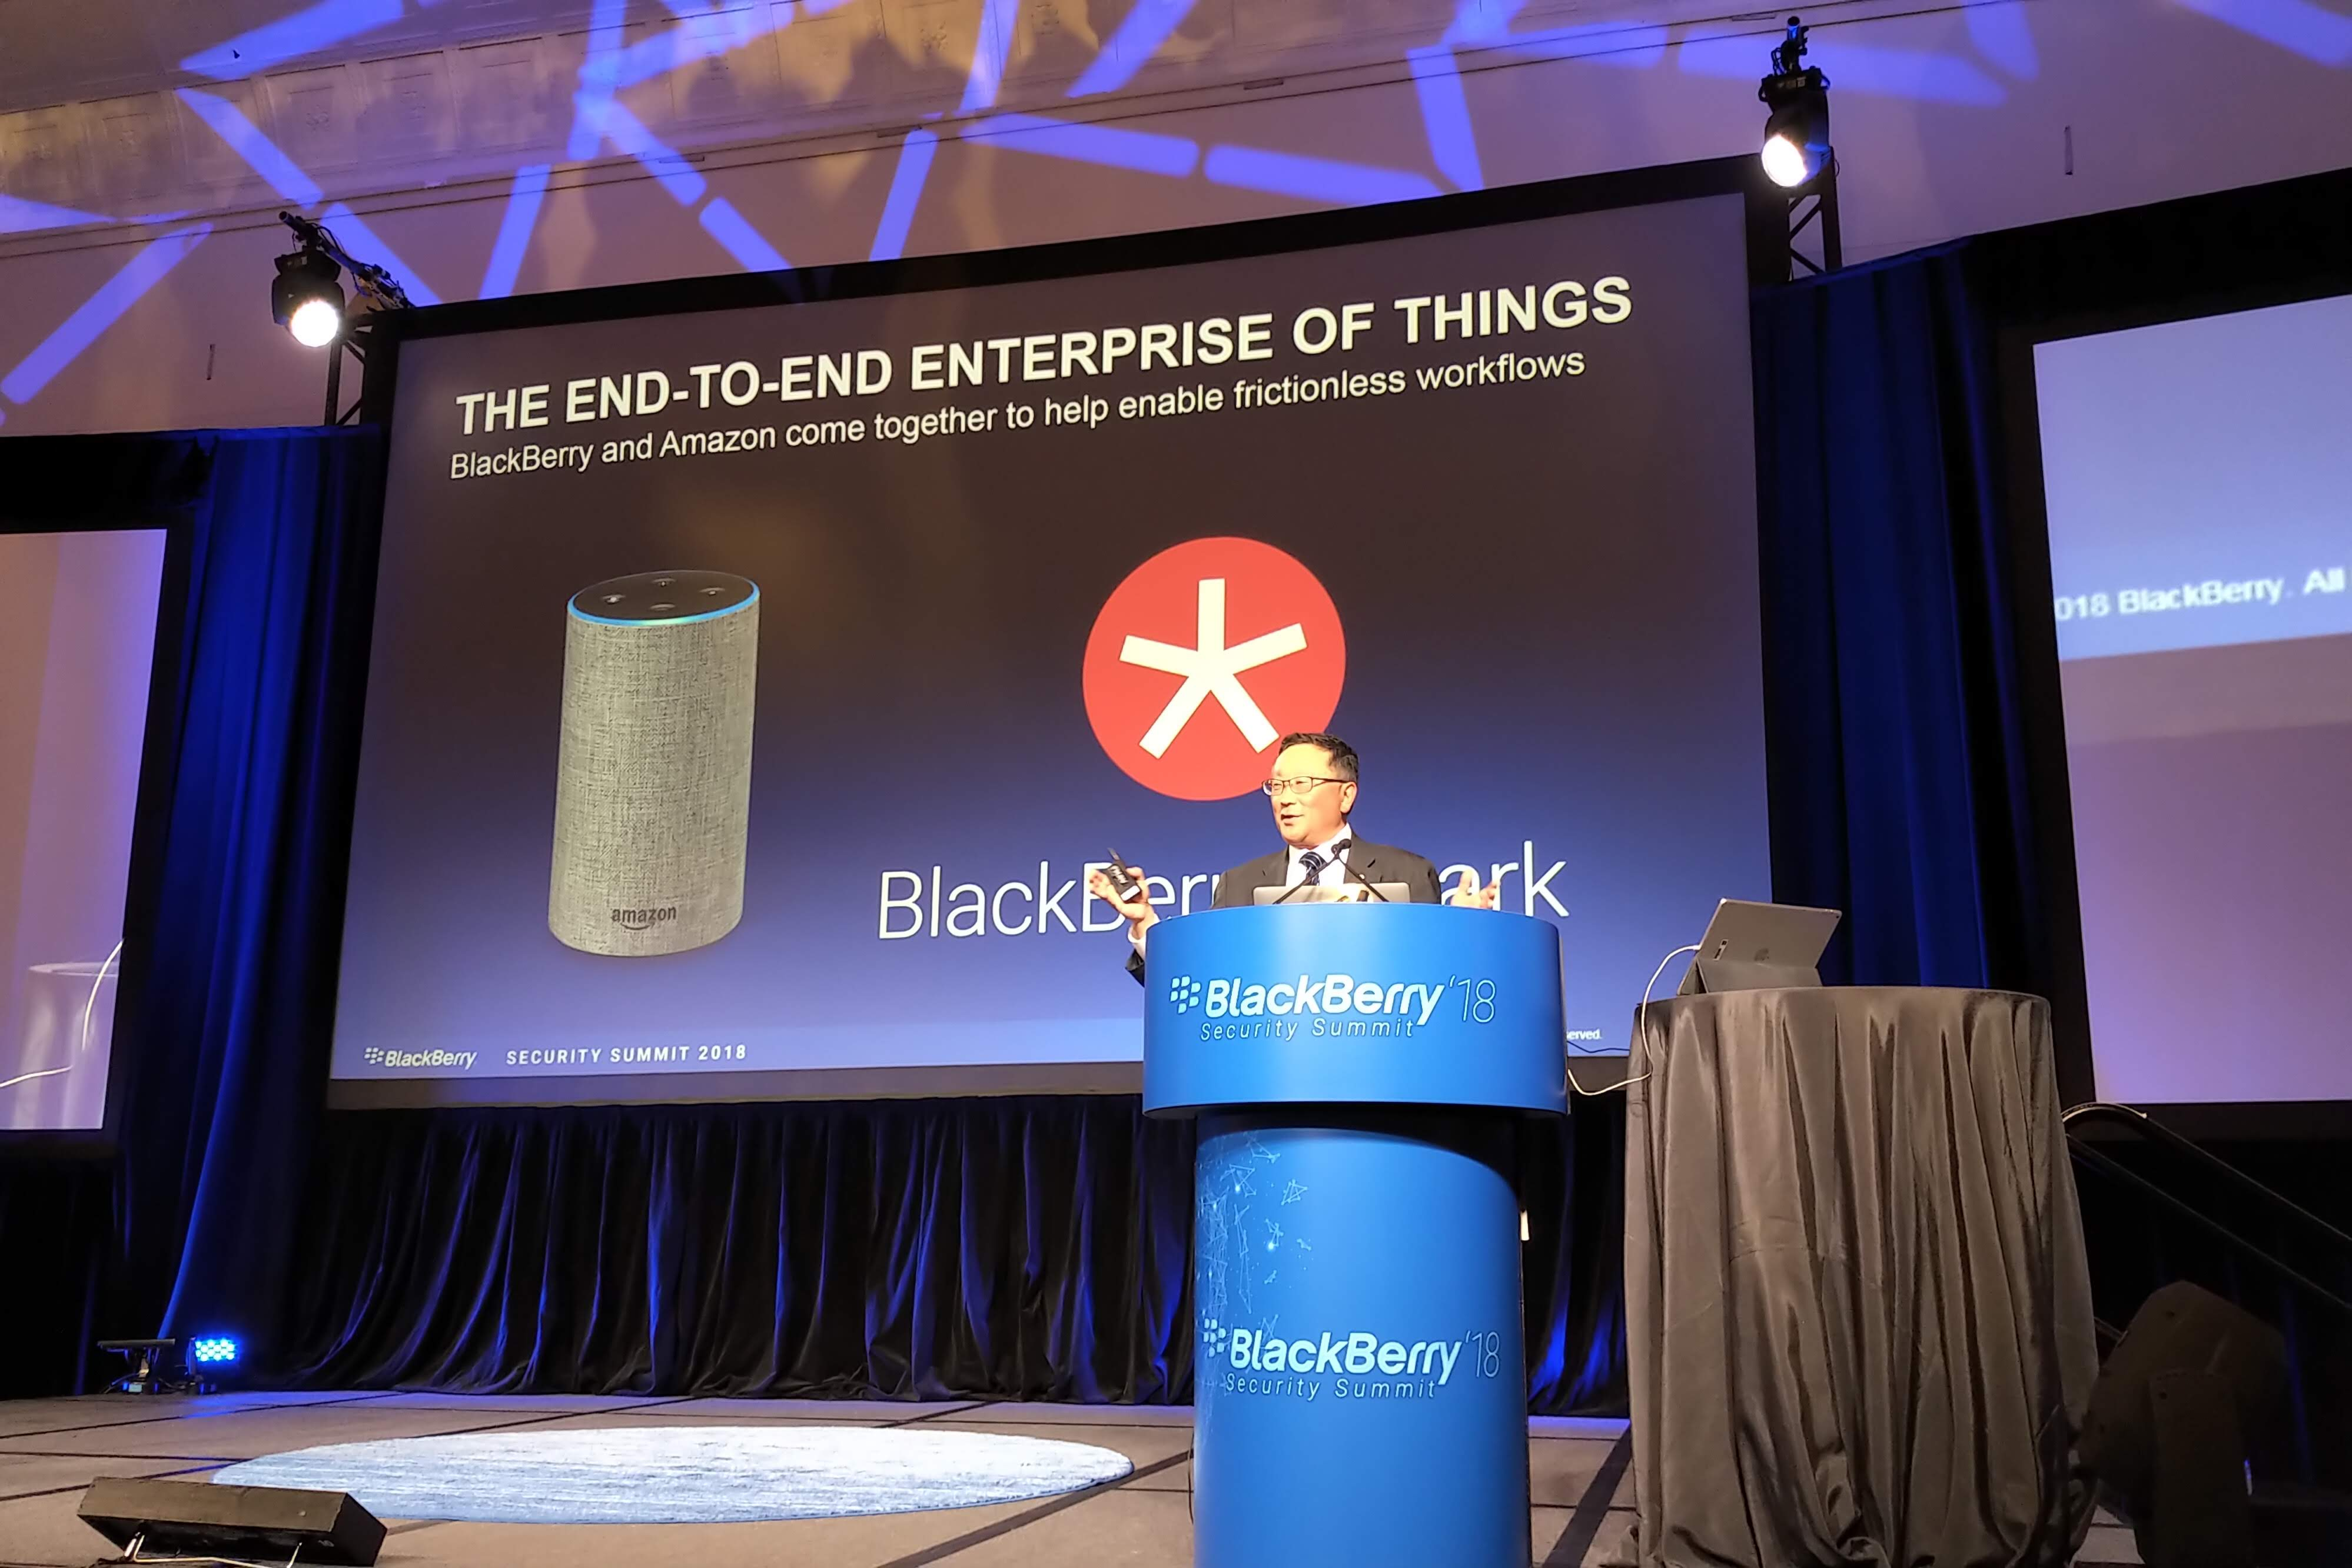 IoT devices | TechSecurity news